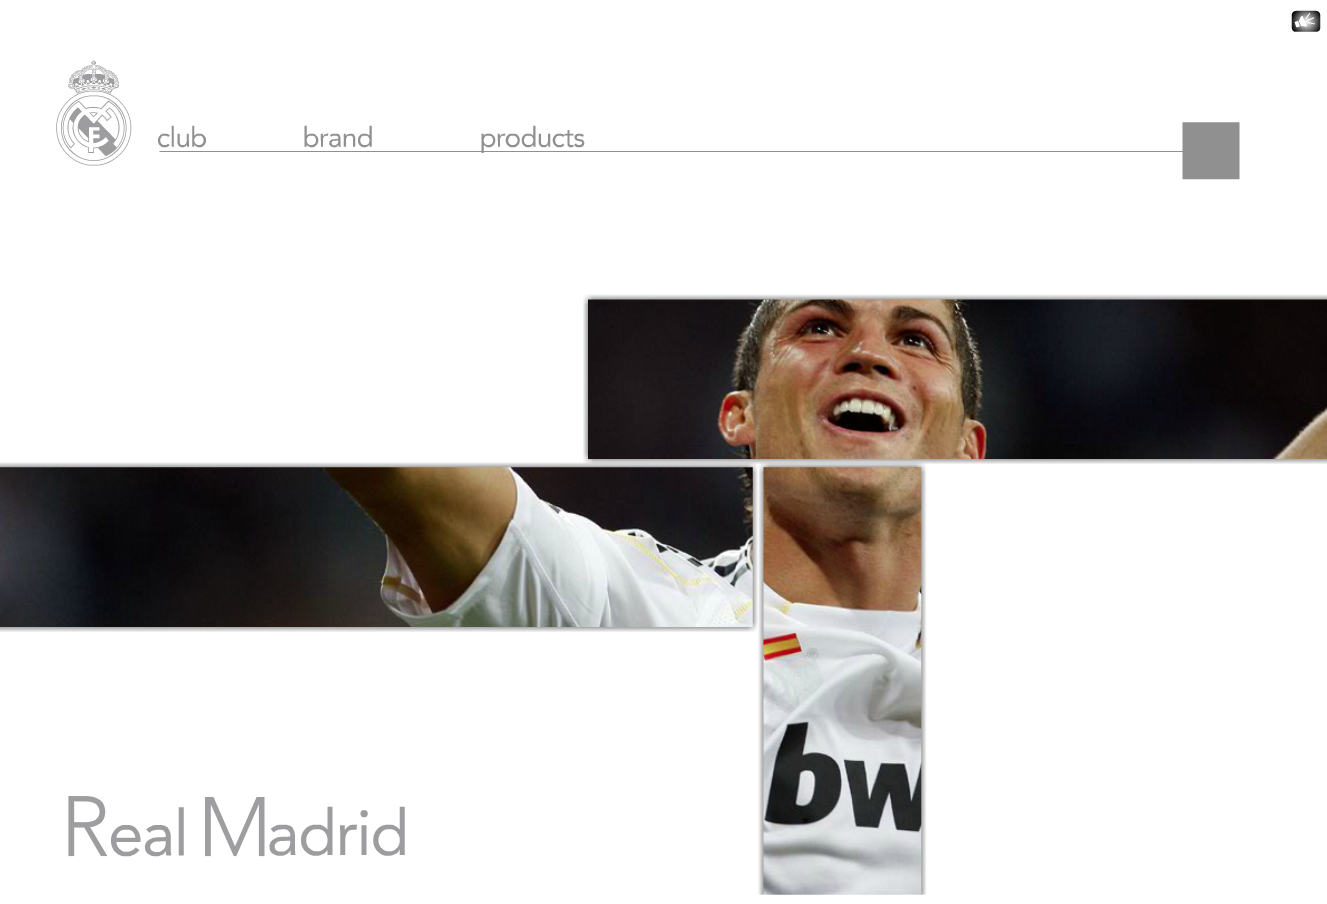 Captura App Real Madrid 1